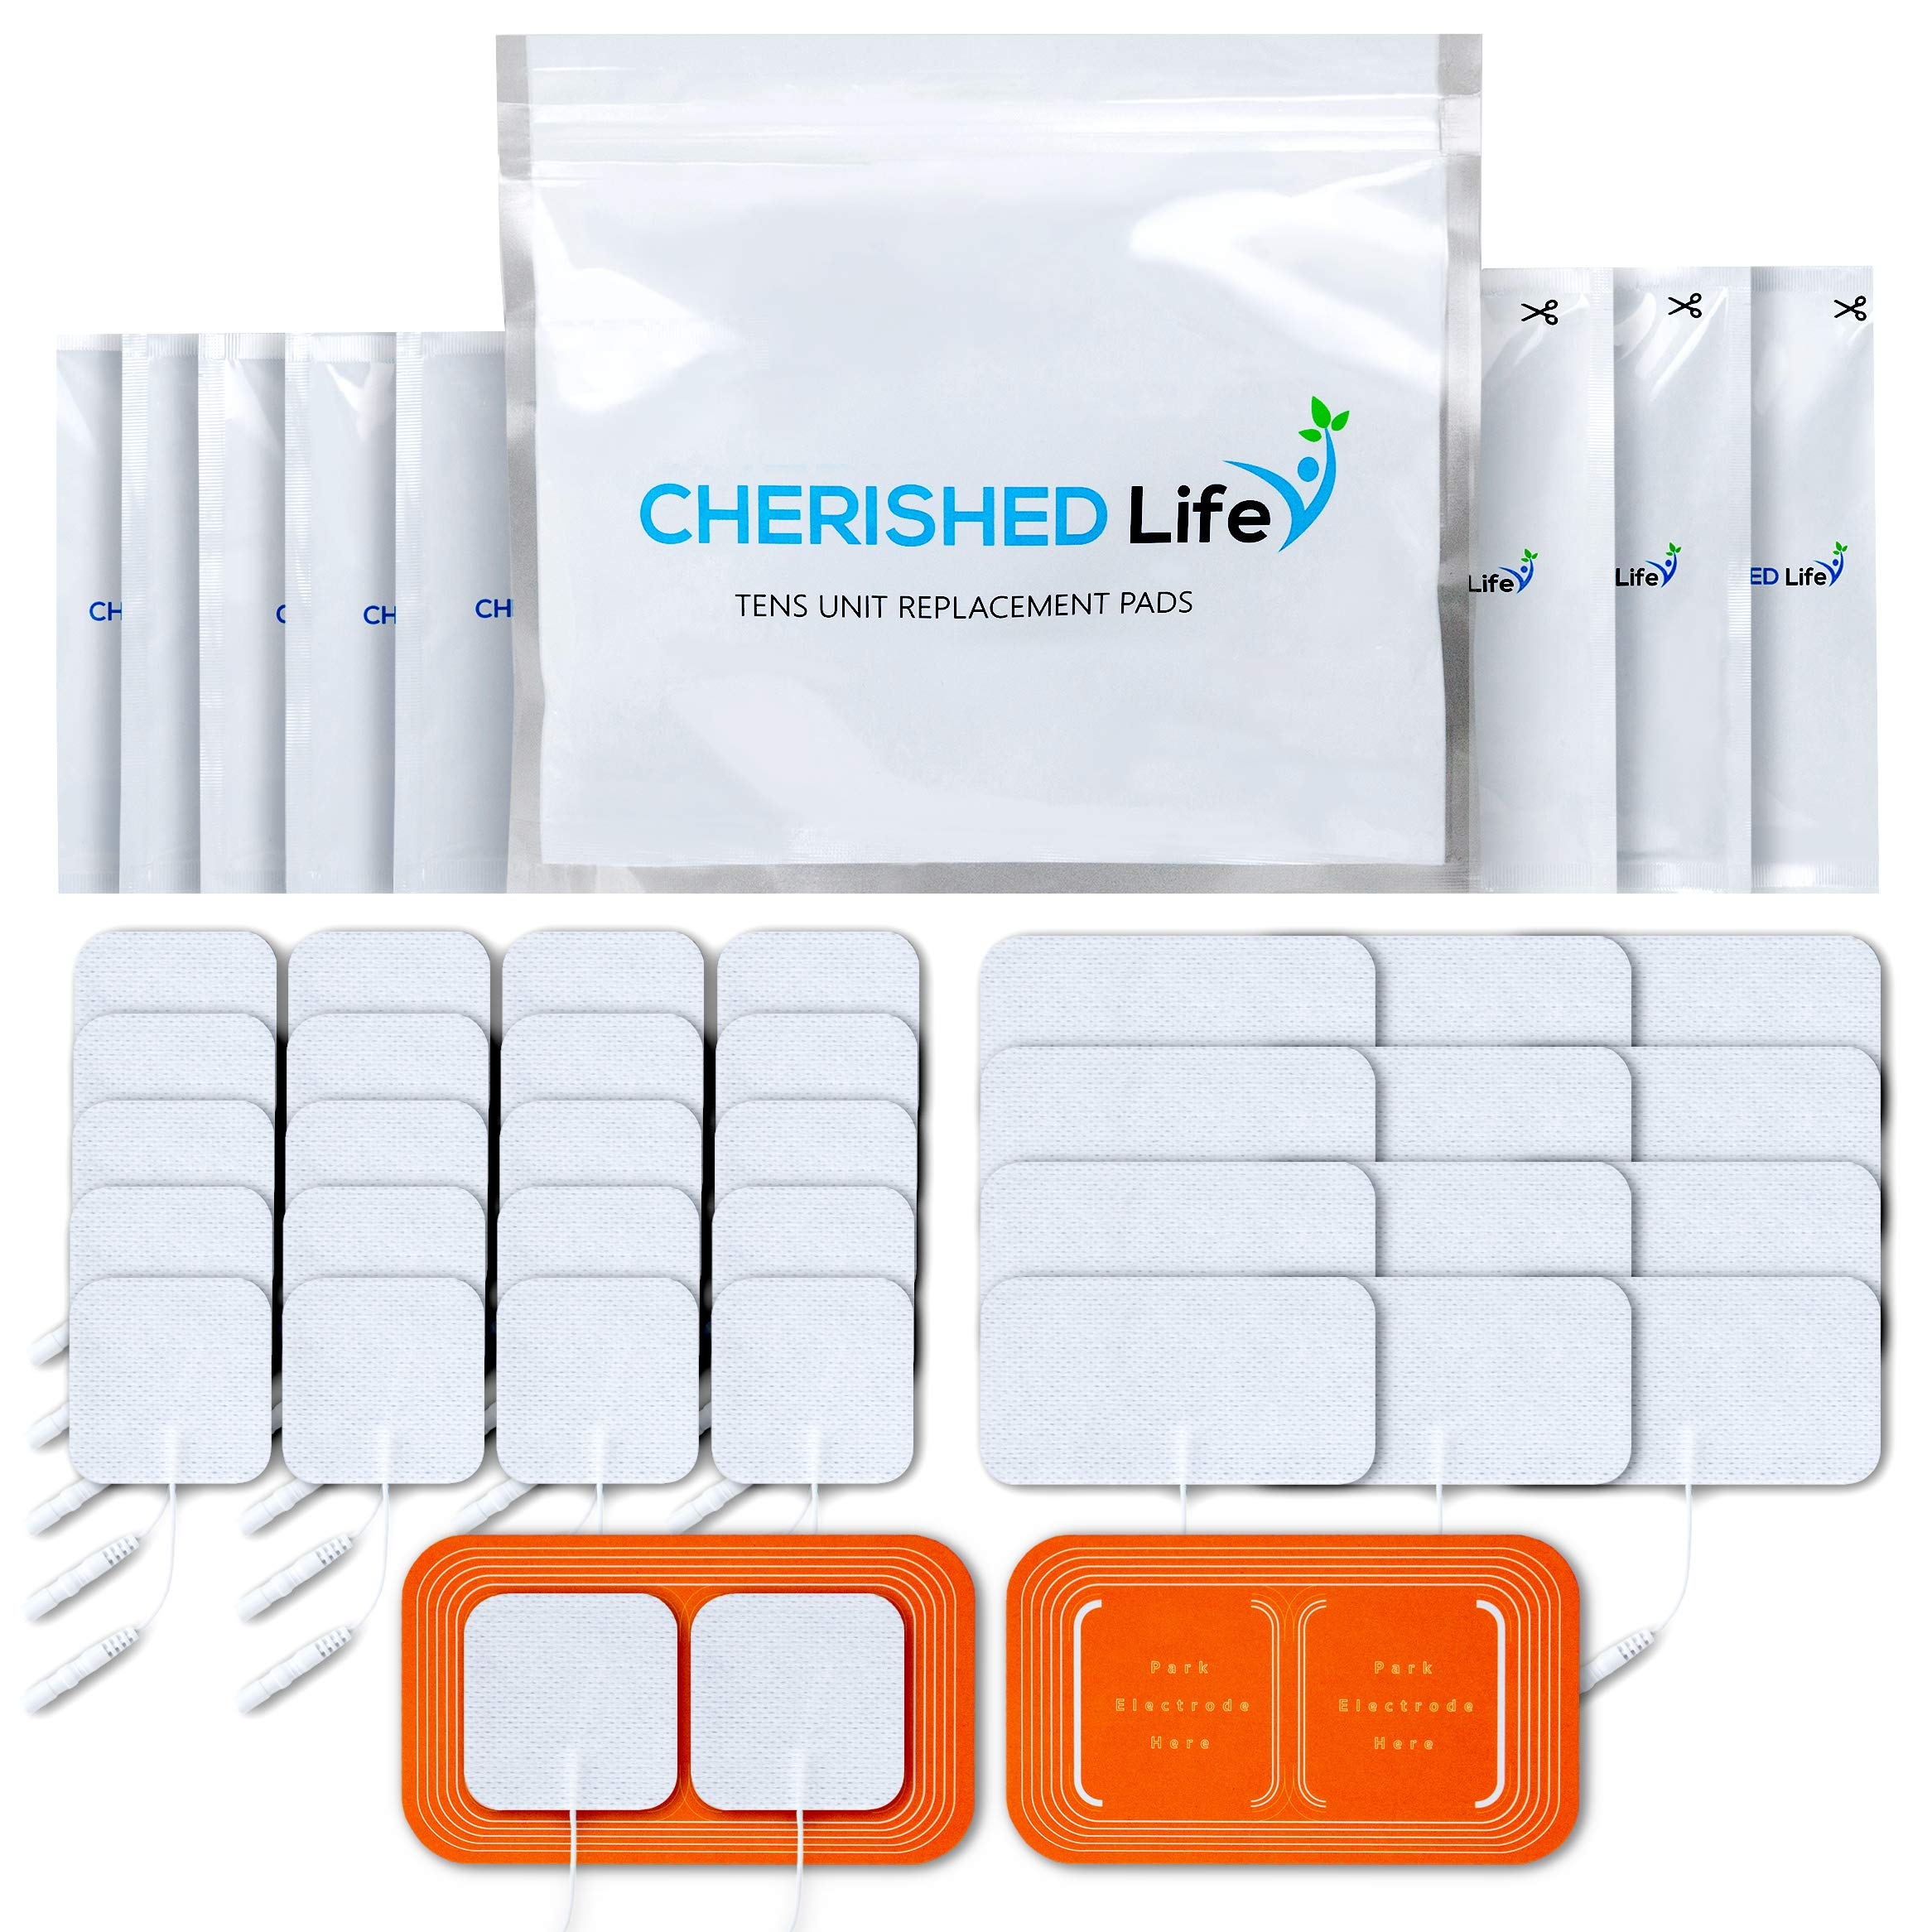 TENS Unit Pads Premium Multi Pack of Latex-Free, Non-Irritating Replacement Electrode Patches for Muscle Stimulation Massage Electrotherapy - 34pcs (2x2in Small, 2x4in XL, Pad Holders) by Cherished Life (Image #1)